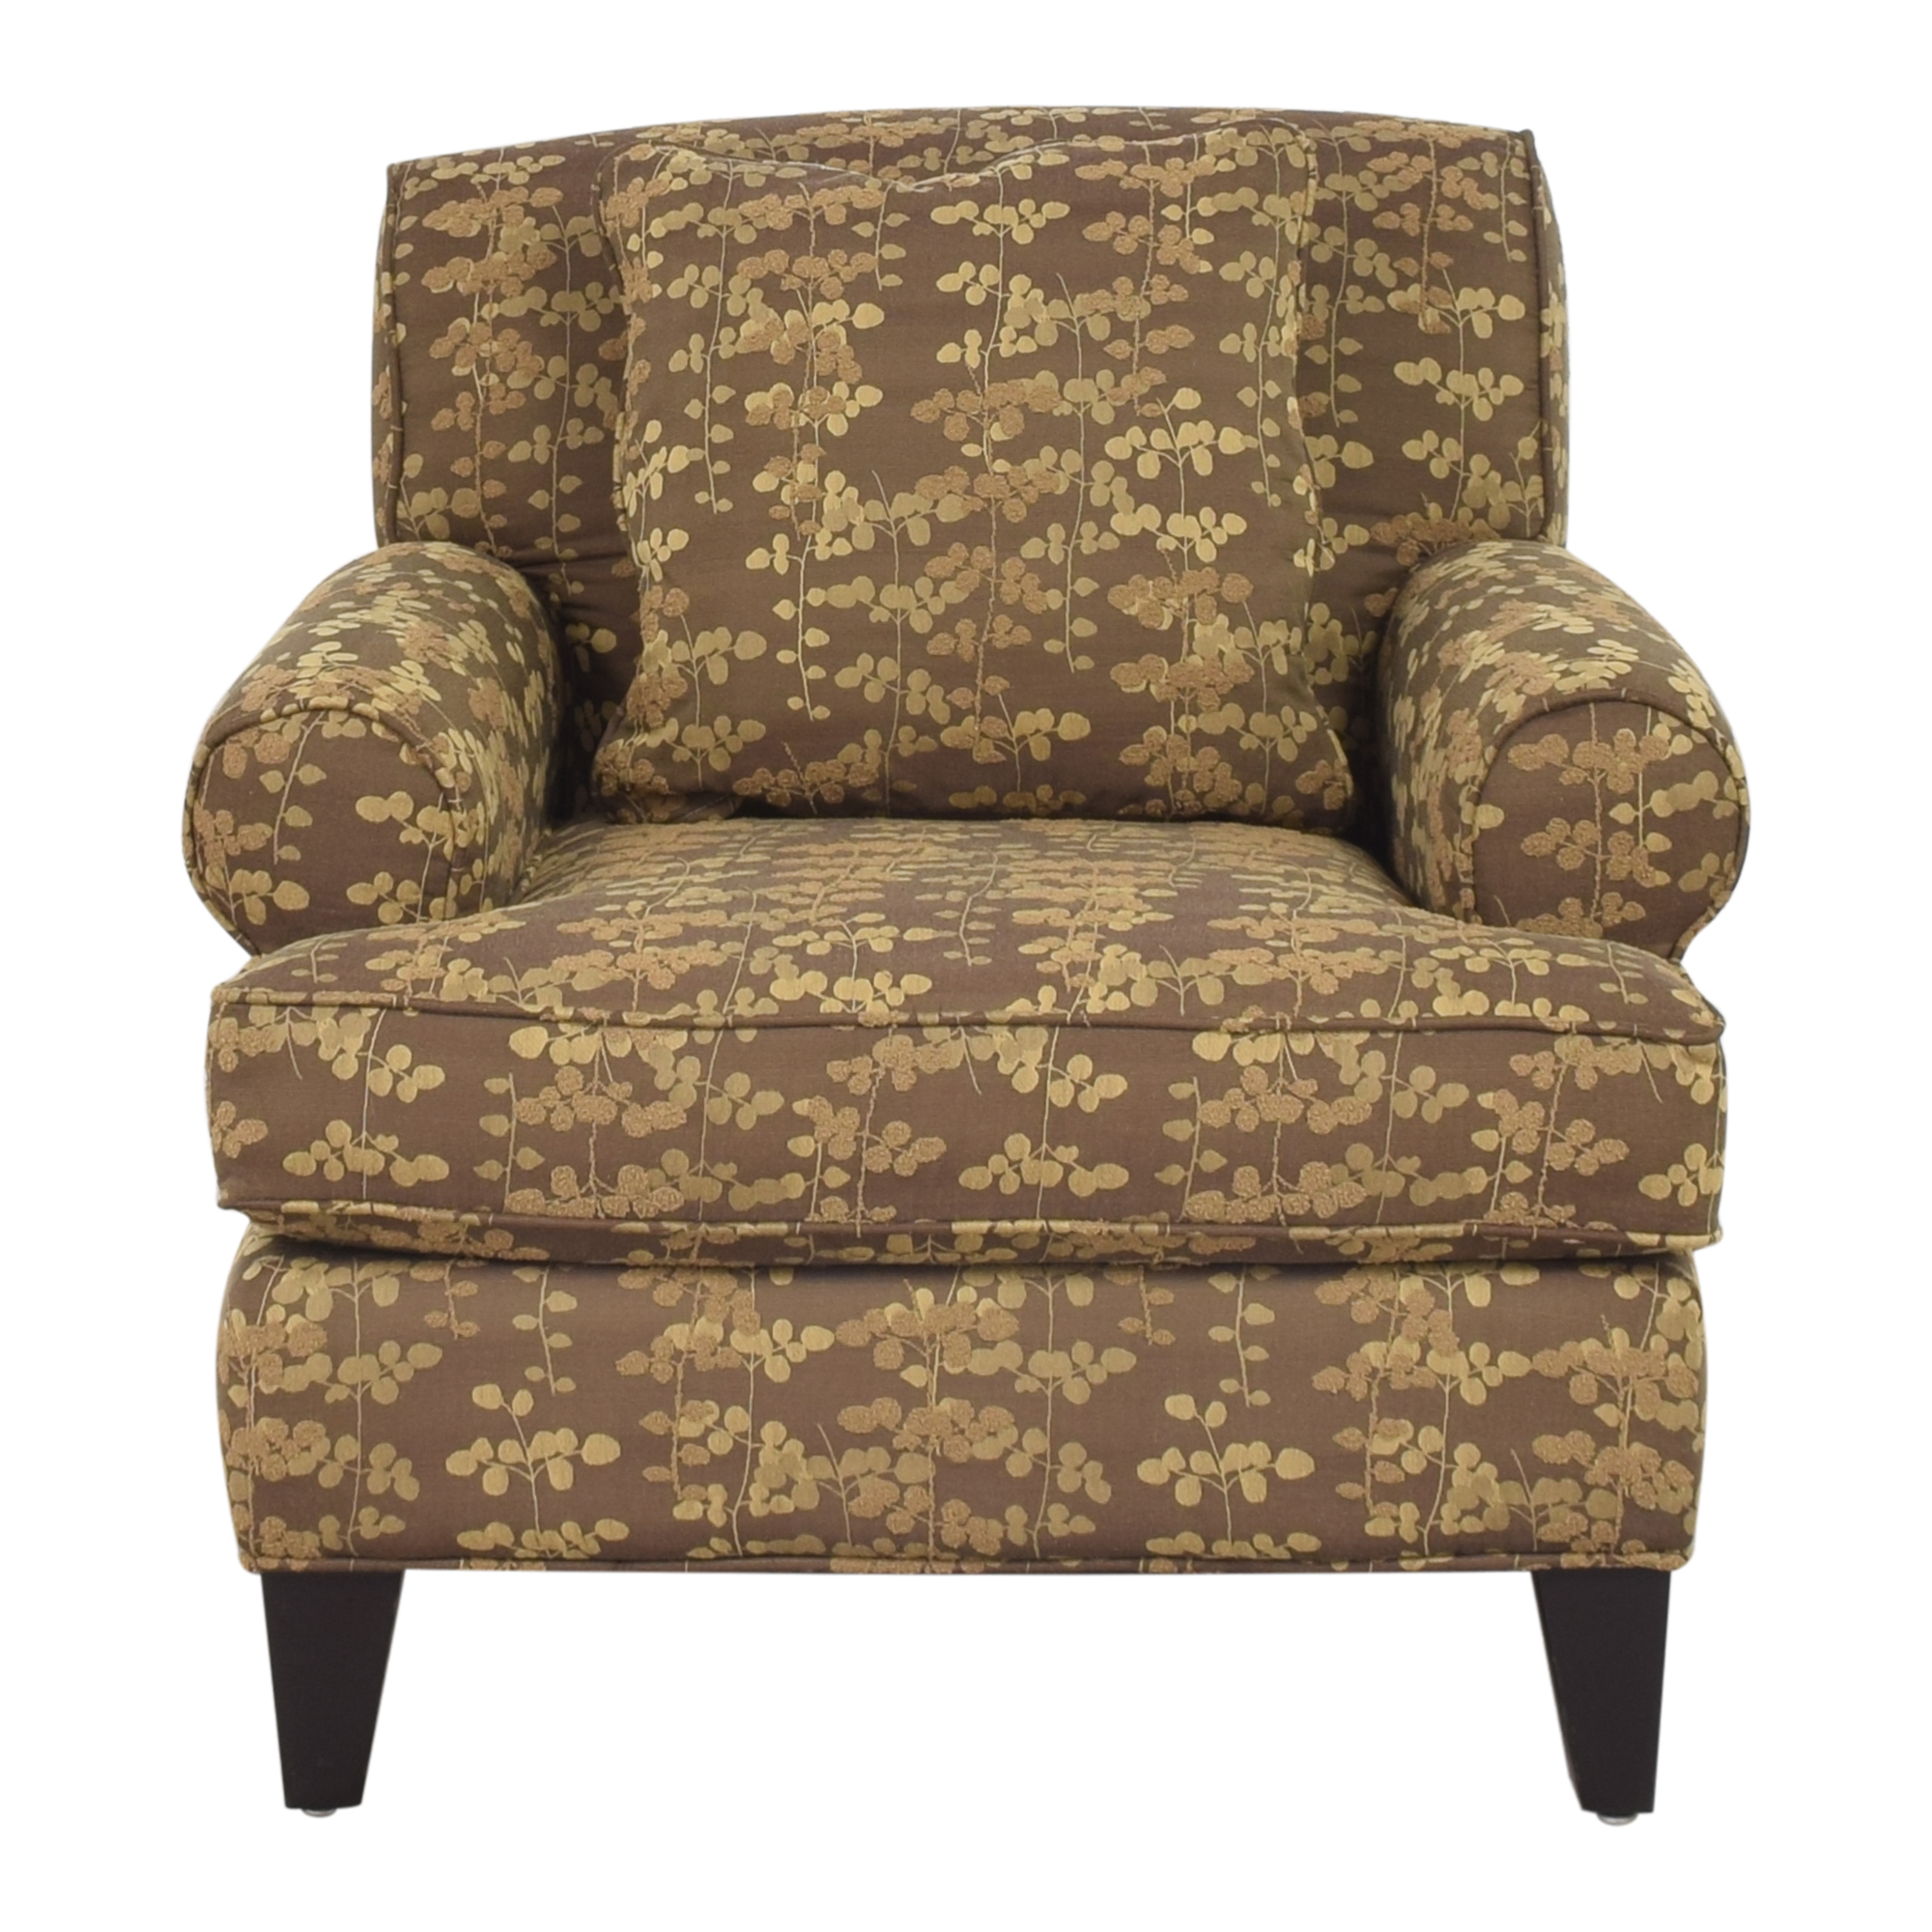 Macy's Macy's Roll Arm Club Chair nj